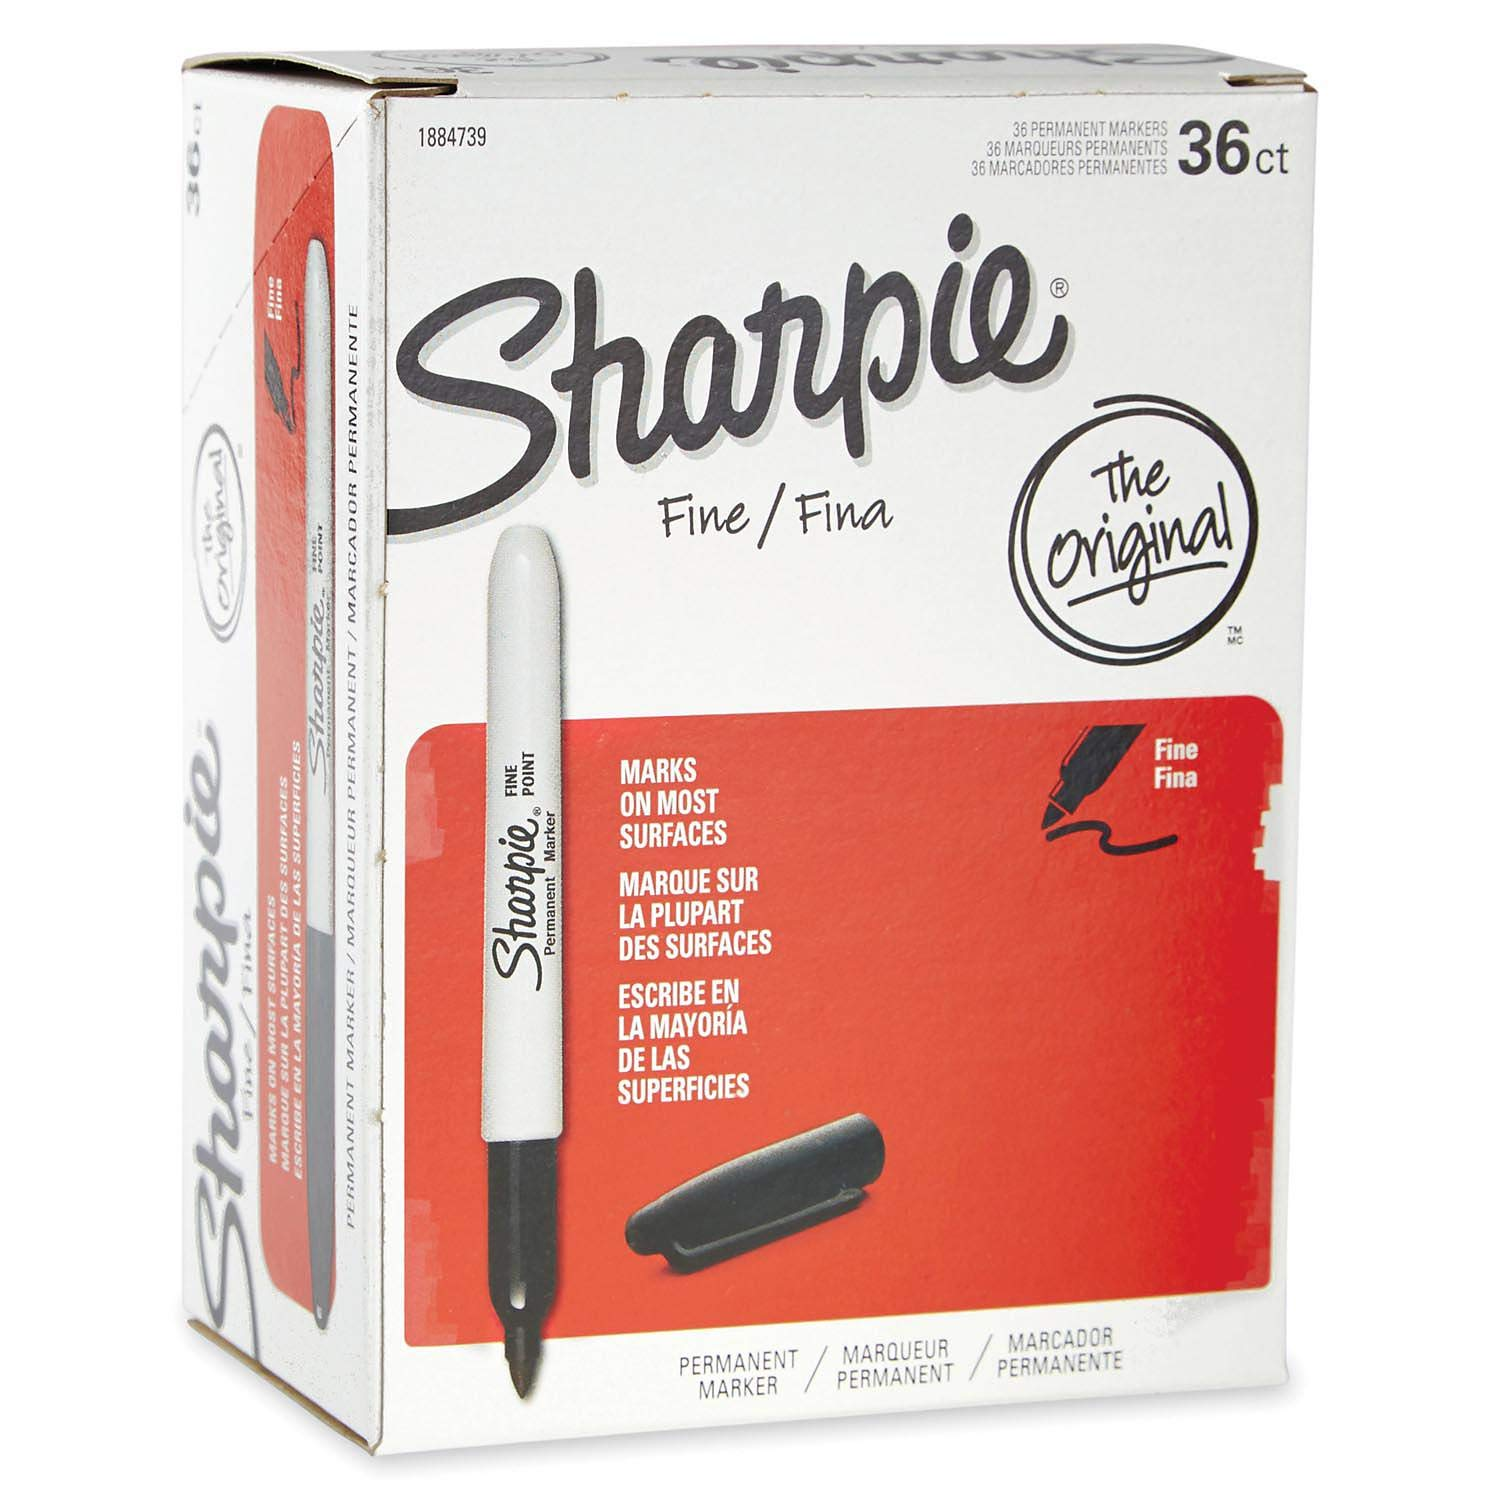 An Item of Sharpie Permanent Marker, Fine Point, Select Color - 36/Pack - Pack of 1 by Brand of Sharpie